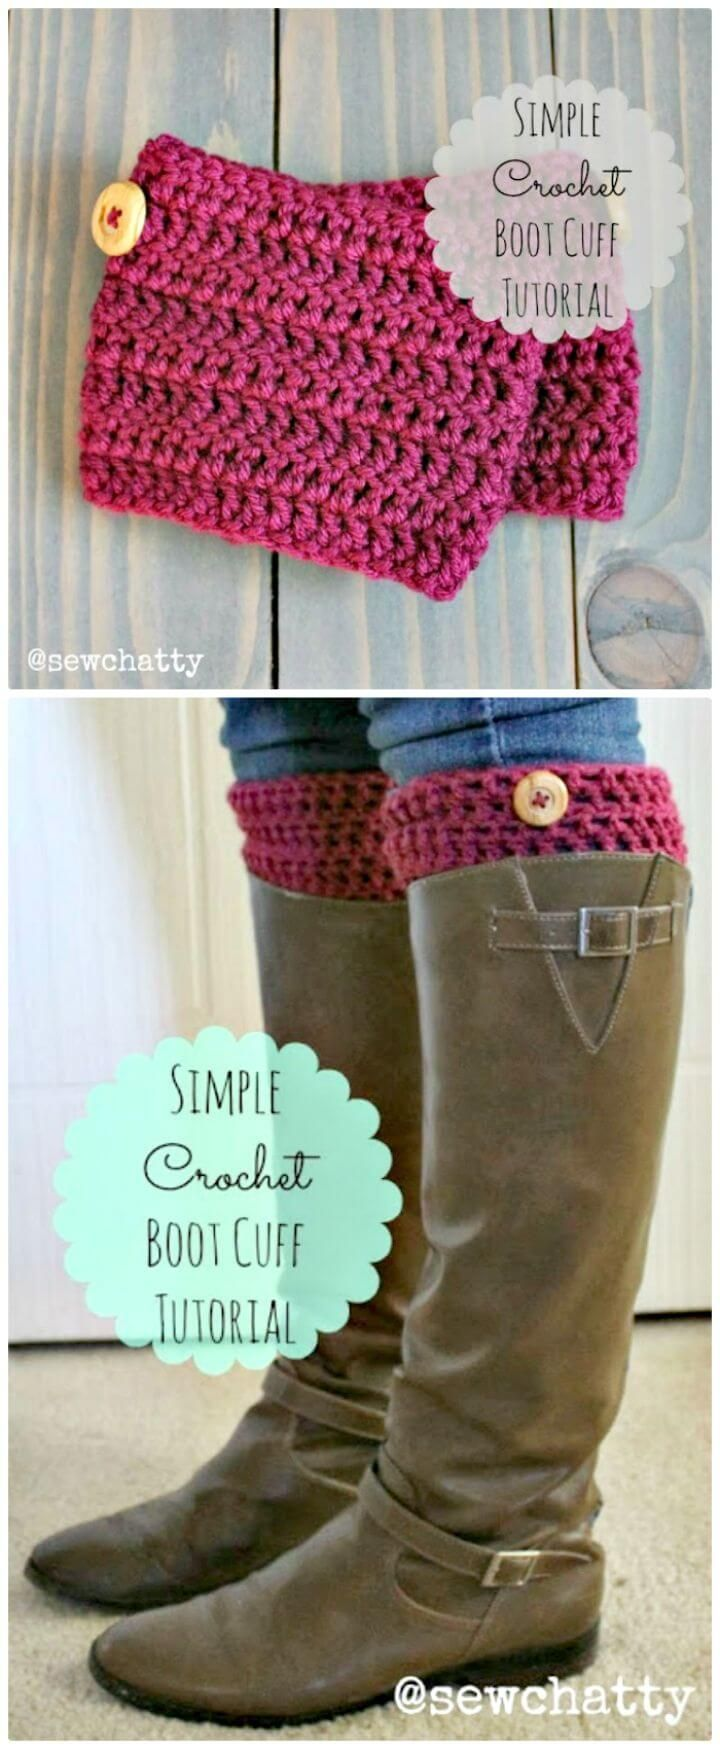 Crochet Boot Cuffs | 24 Free Crochet Patterns #bootcuffs